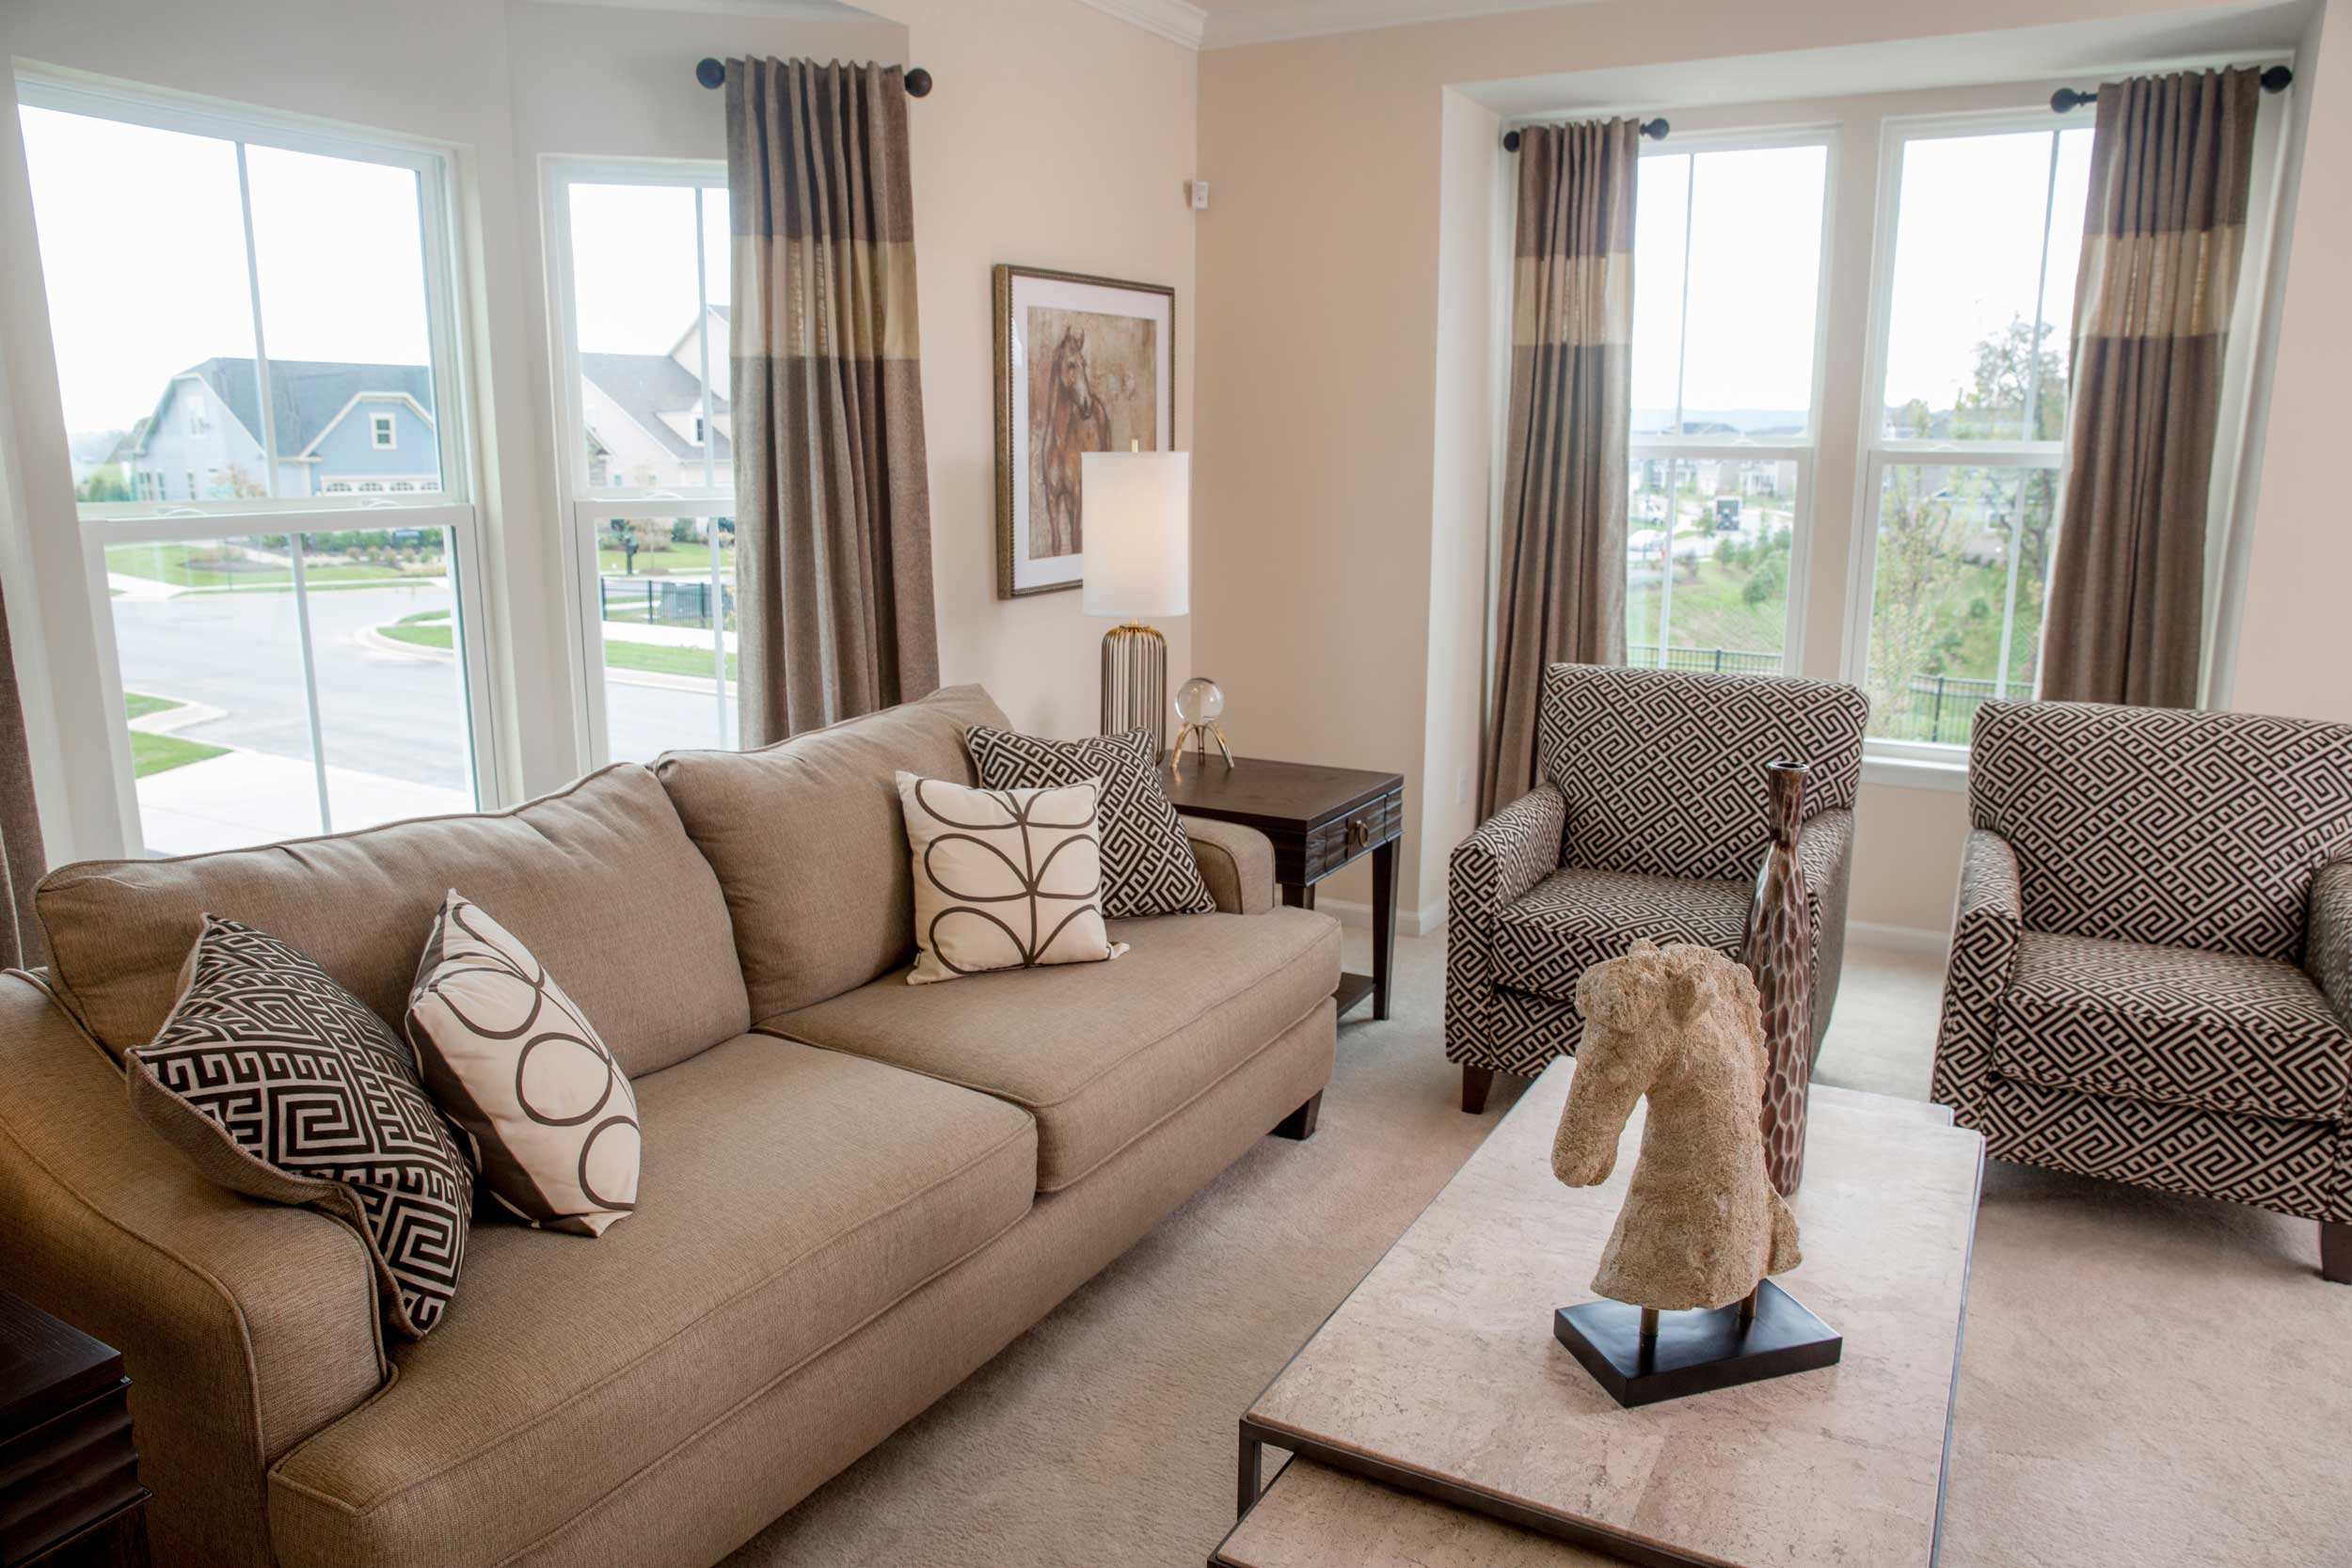 Brunswick_Crossing_Mendelssohn_Ryan_Homes_Living_Room.jpg